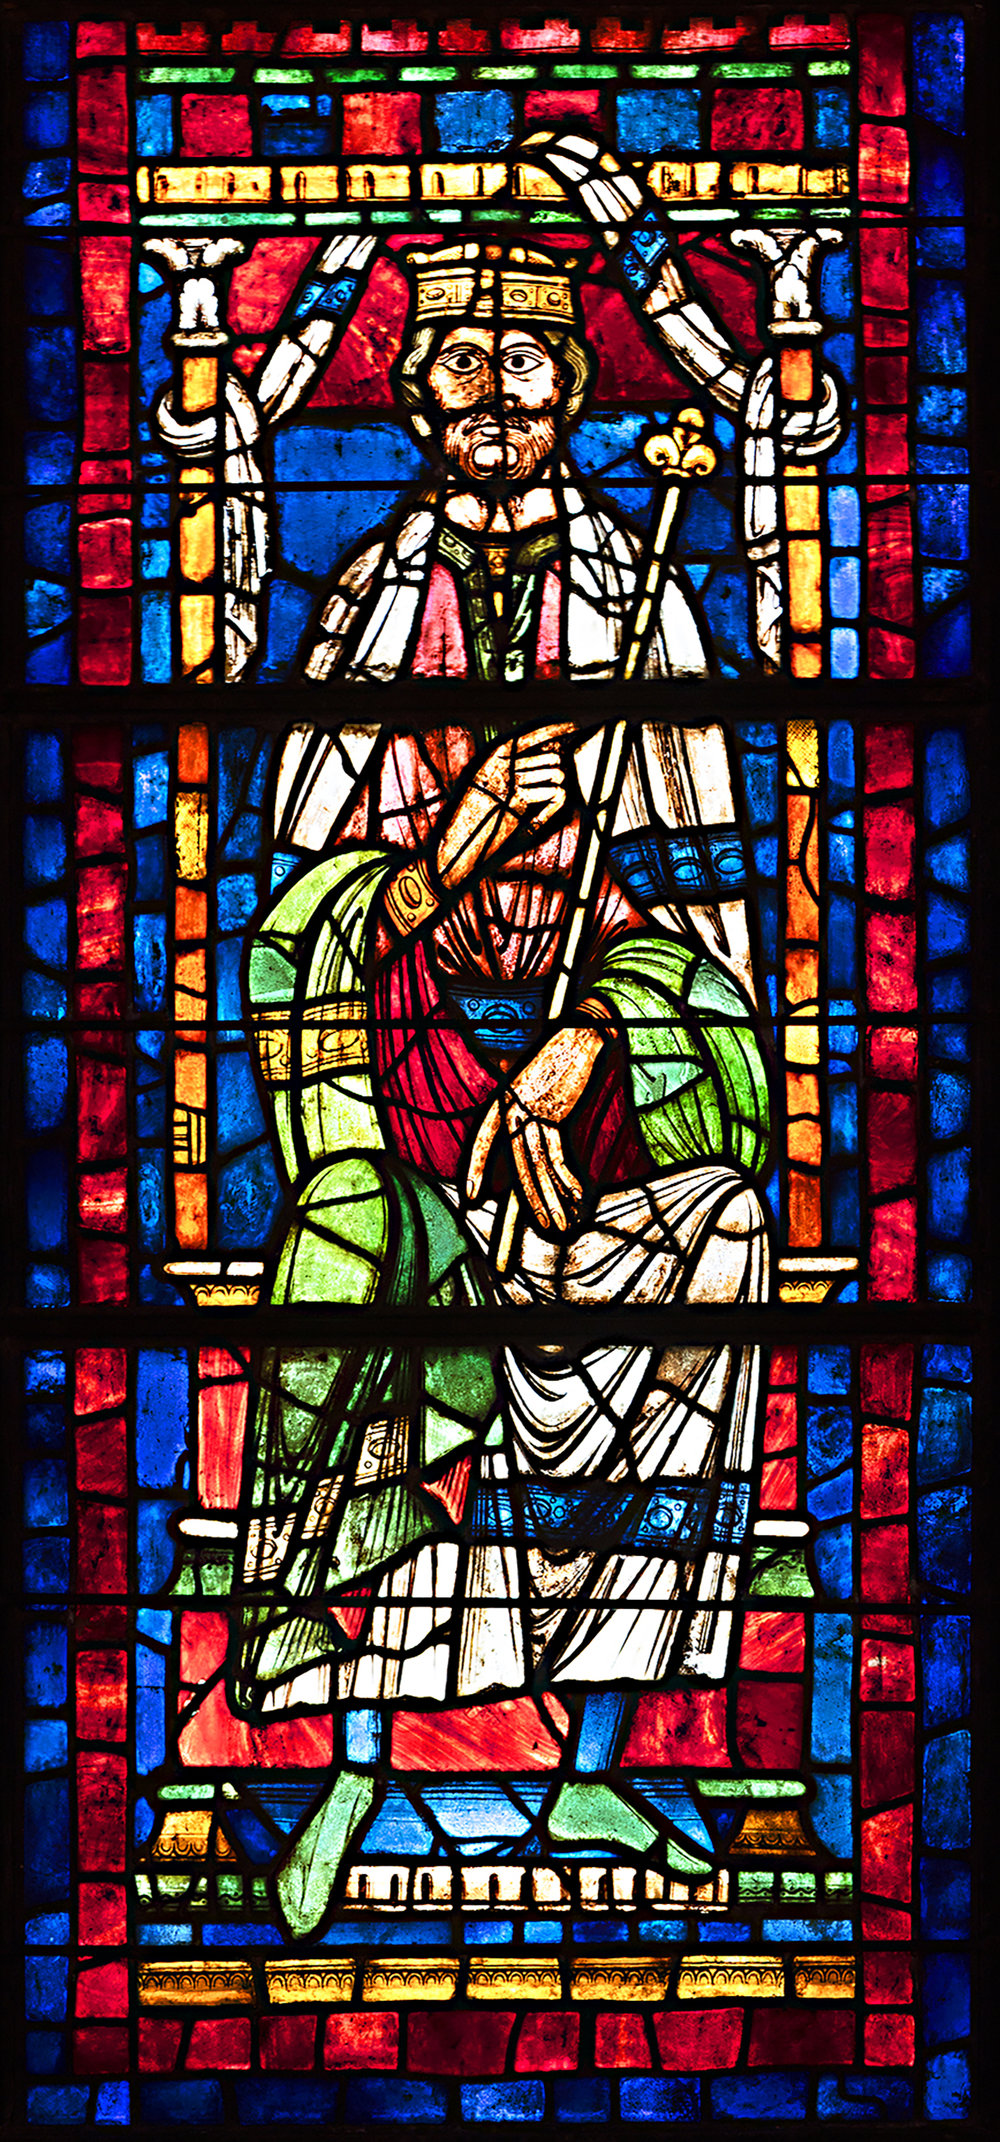 Figure 1:Seated King, stained-glass panel from the Church of Saint-Yved, Braine, France, c. 1190-1200 (03.SG.234).